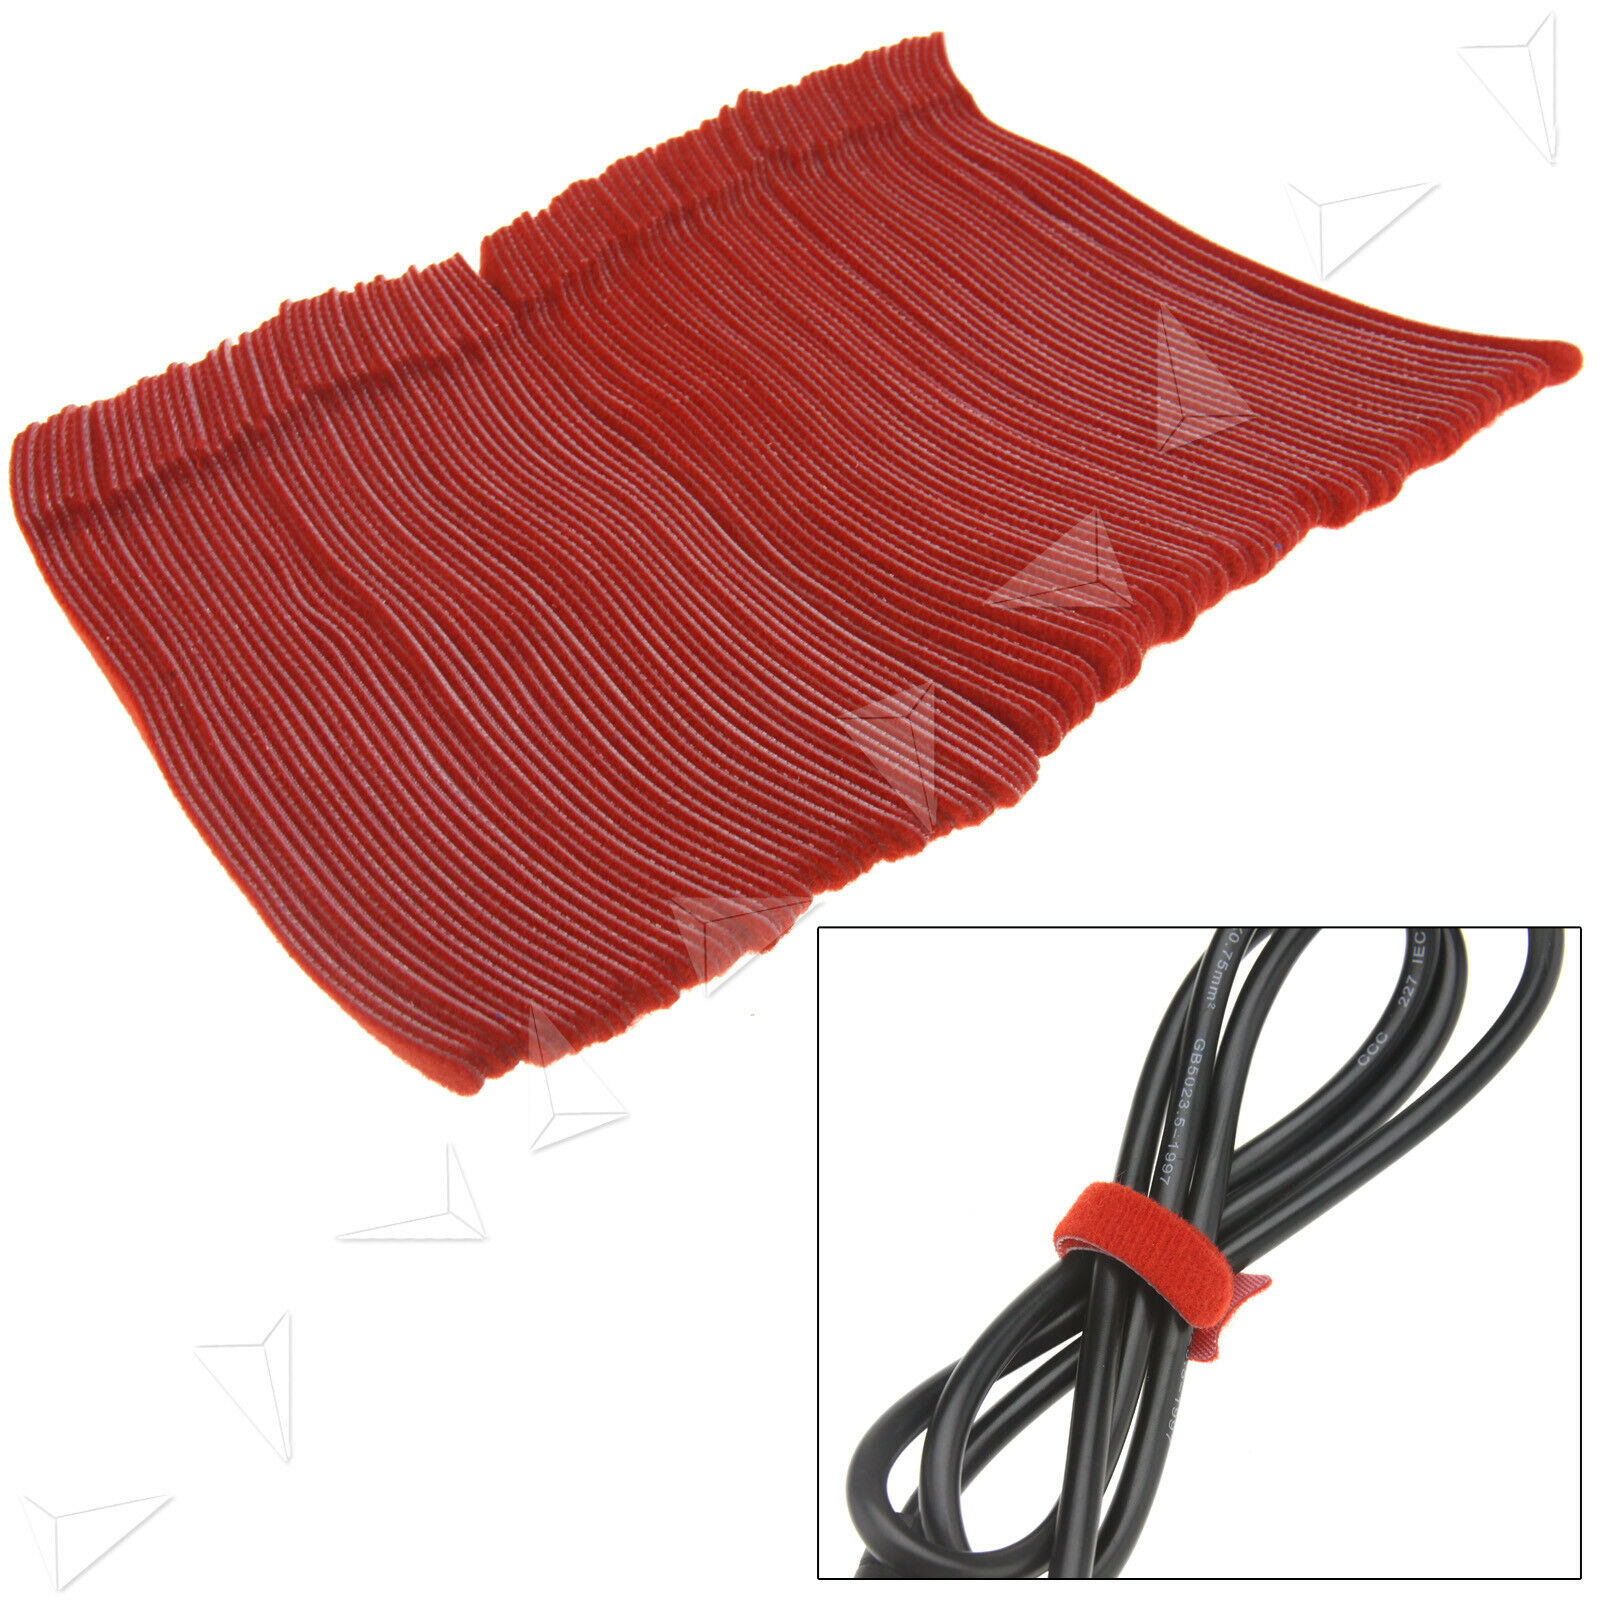 100PCS Reusable Red Adjustable Cable Tidy Strap Ties Tidy Wrap Hook & Loop